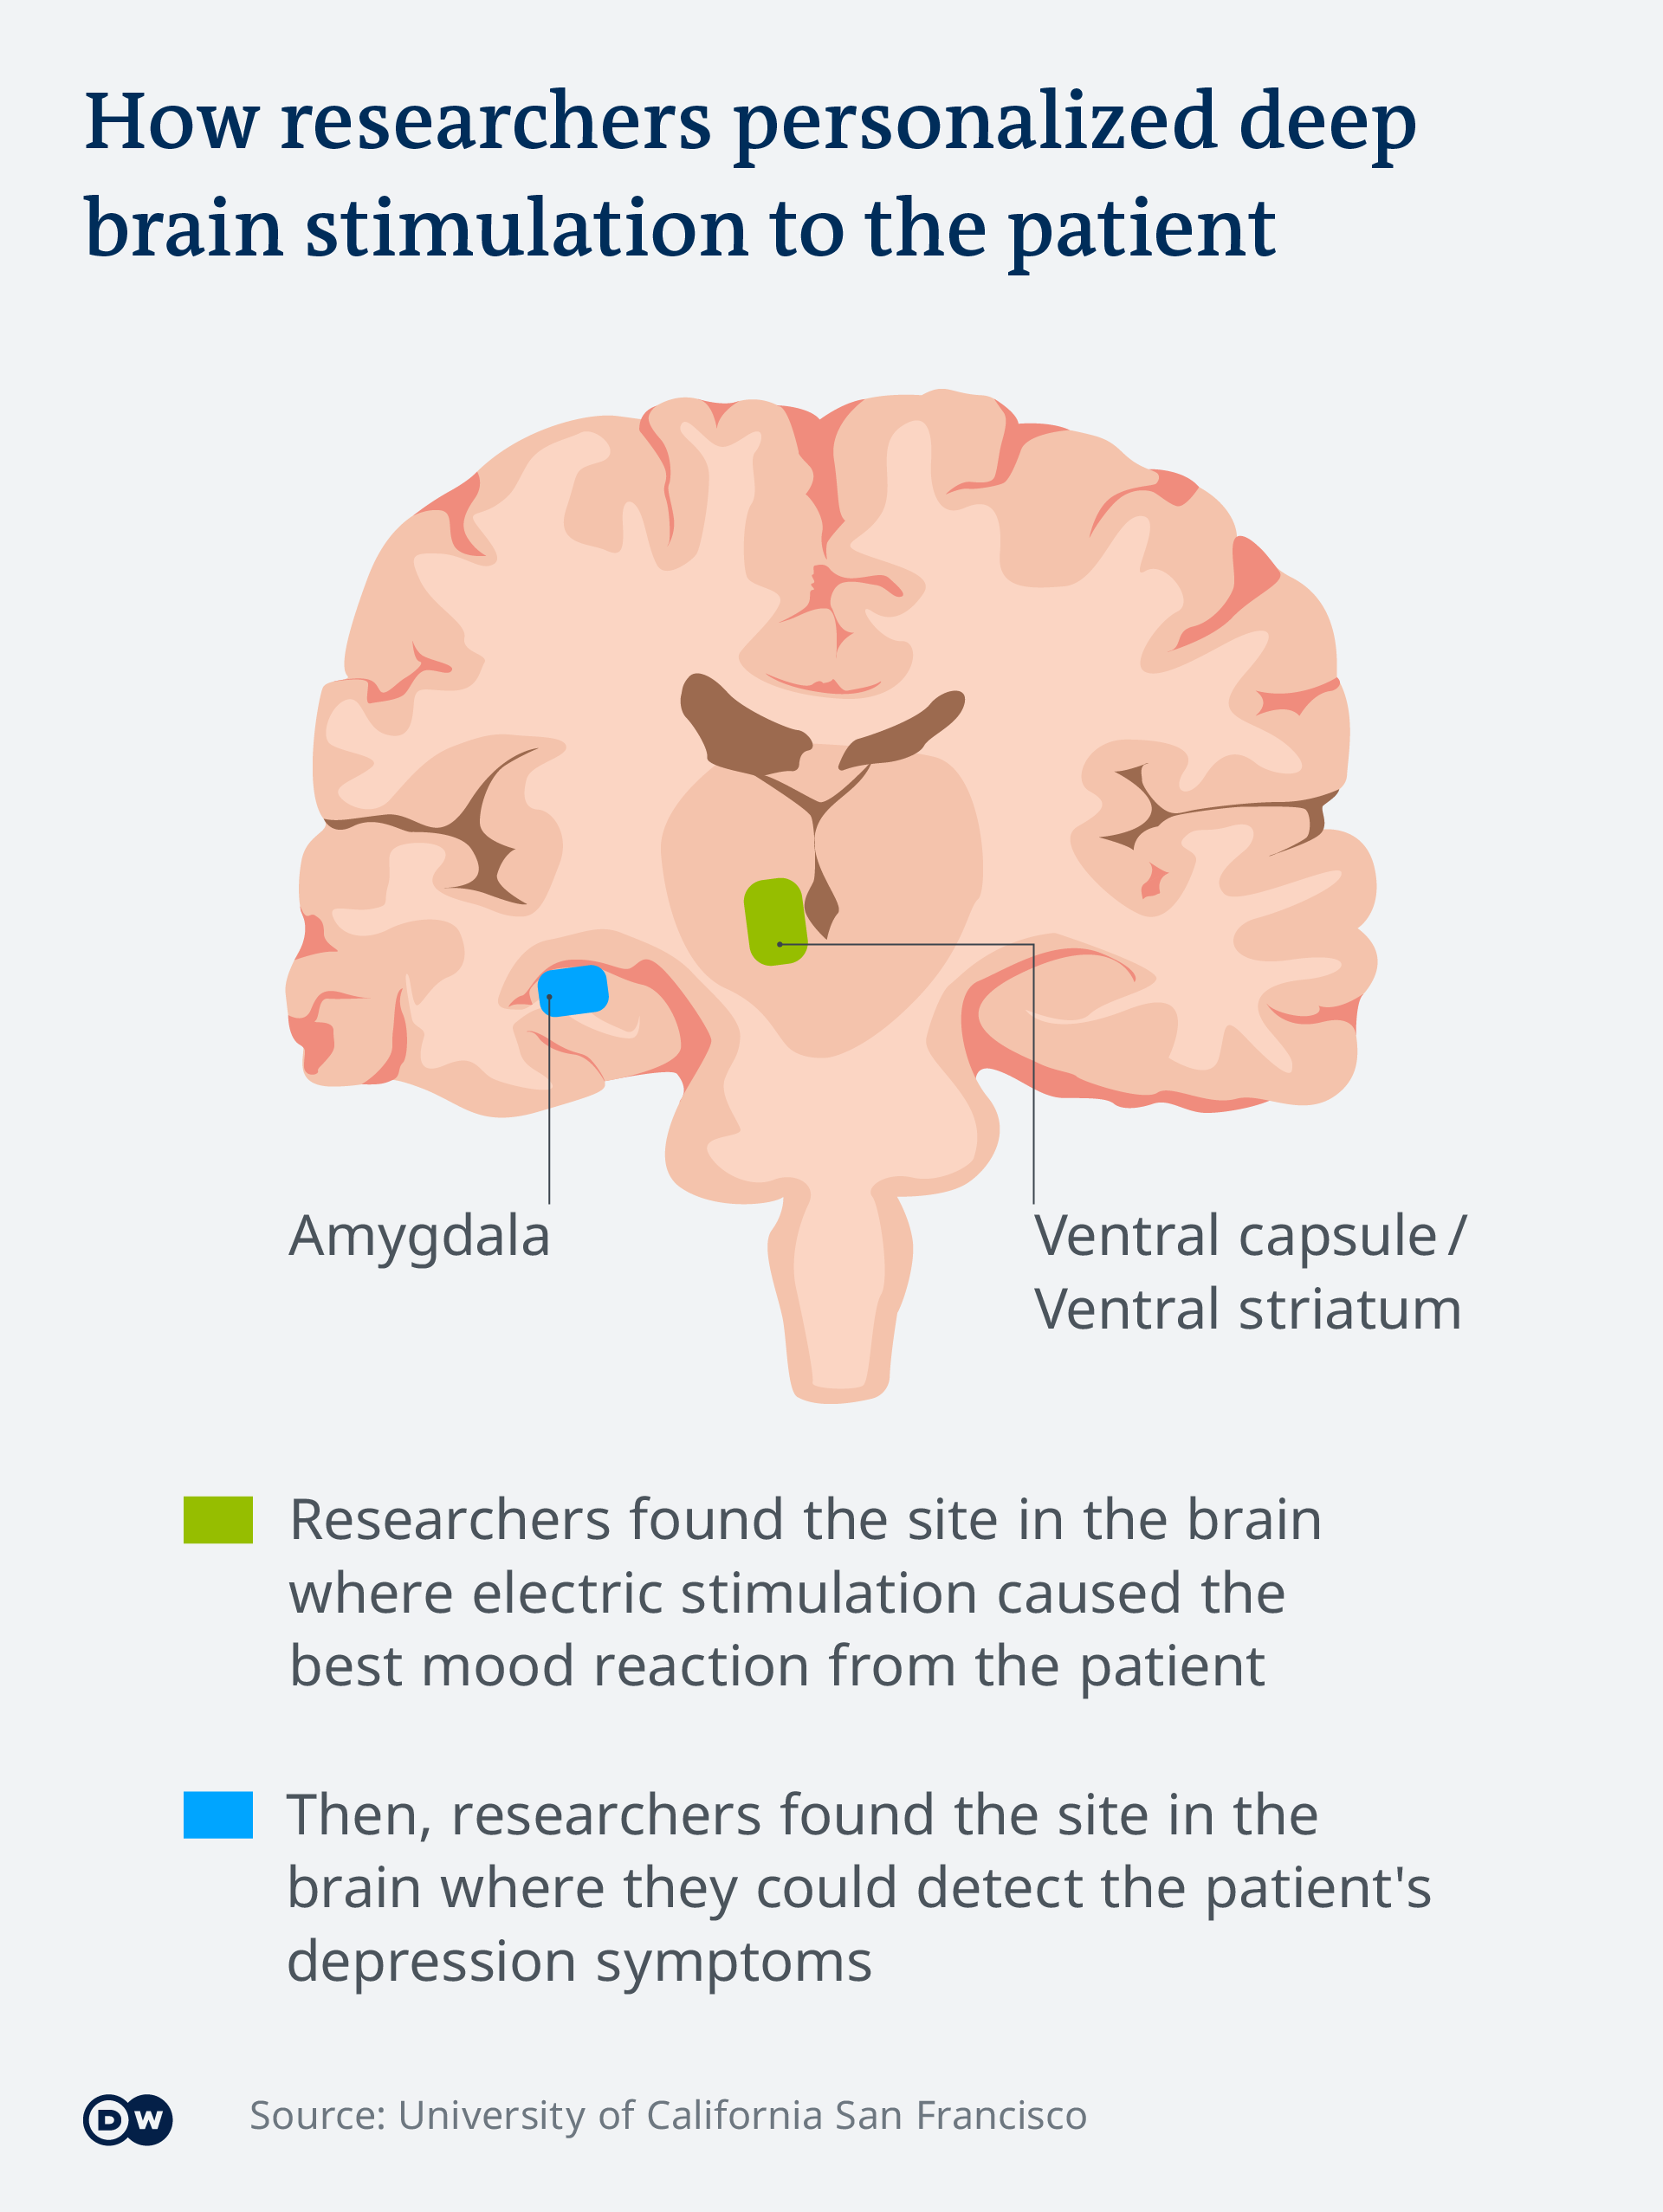 An info-graphic explaining that researchers first found the site in the brain where electric stimulation caused the best mood reaction from the patient (the ventral capsule) and then pinpointed the site in the brain where they could detect the patient's depression symptoms (the amygdala)